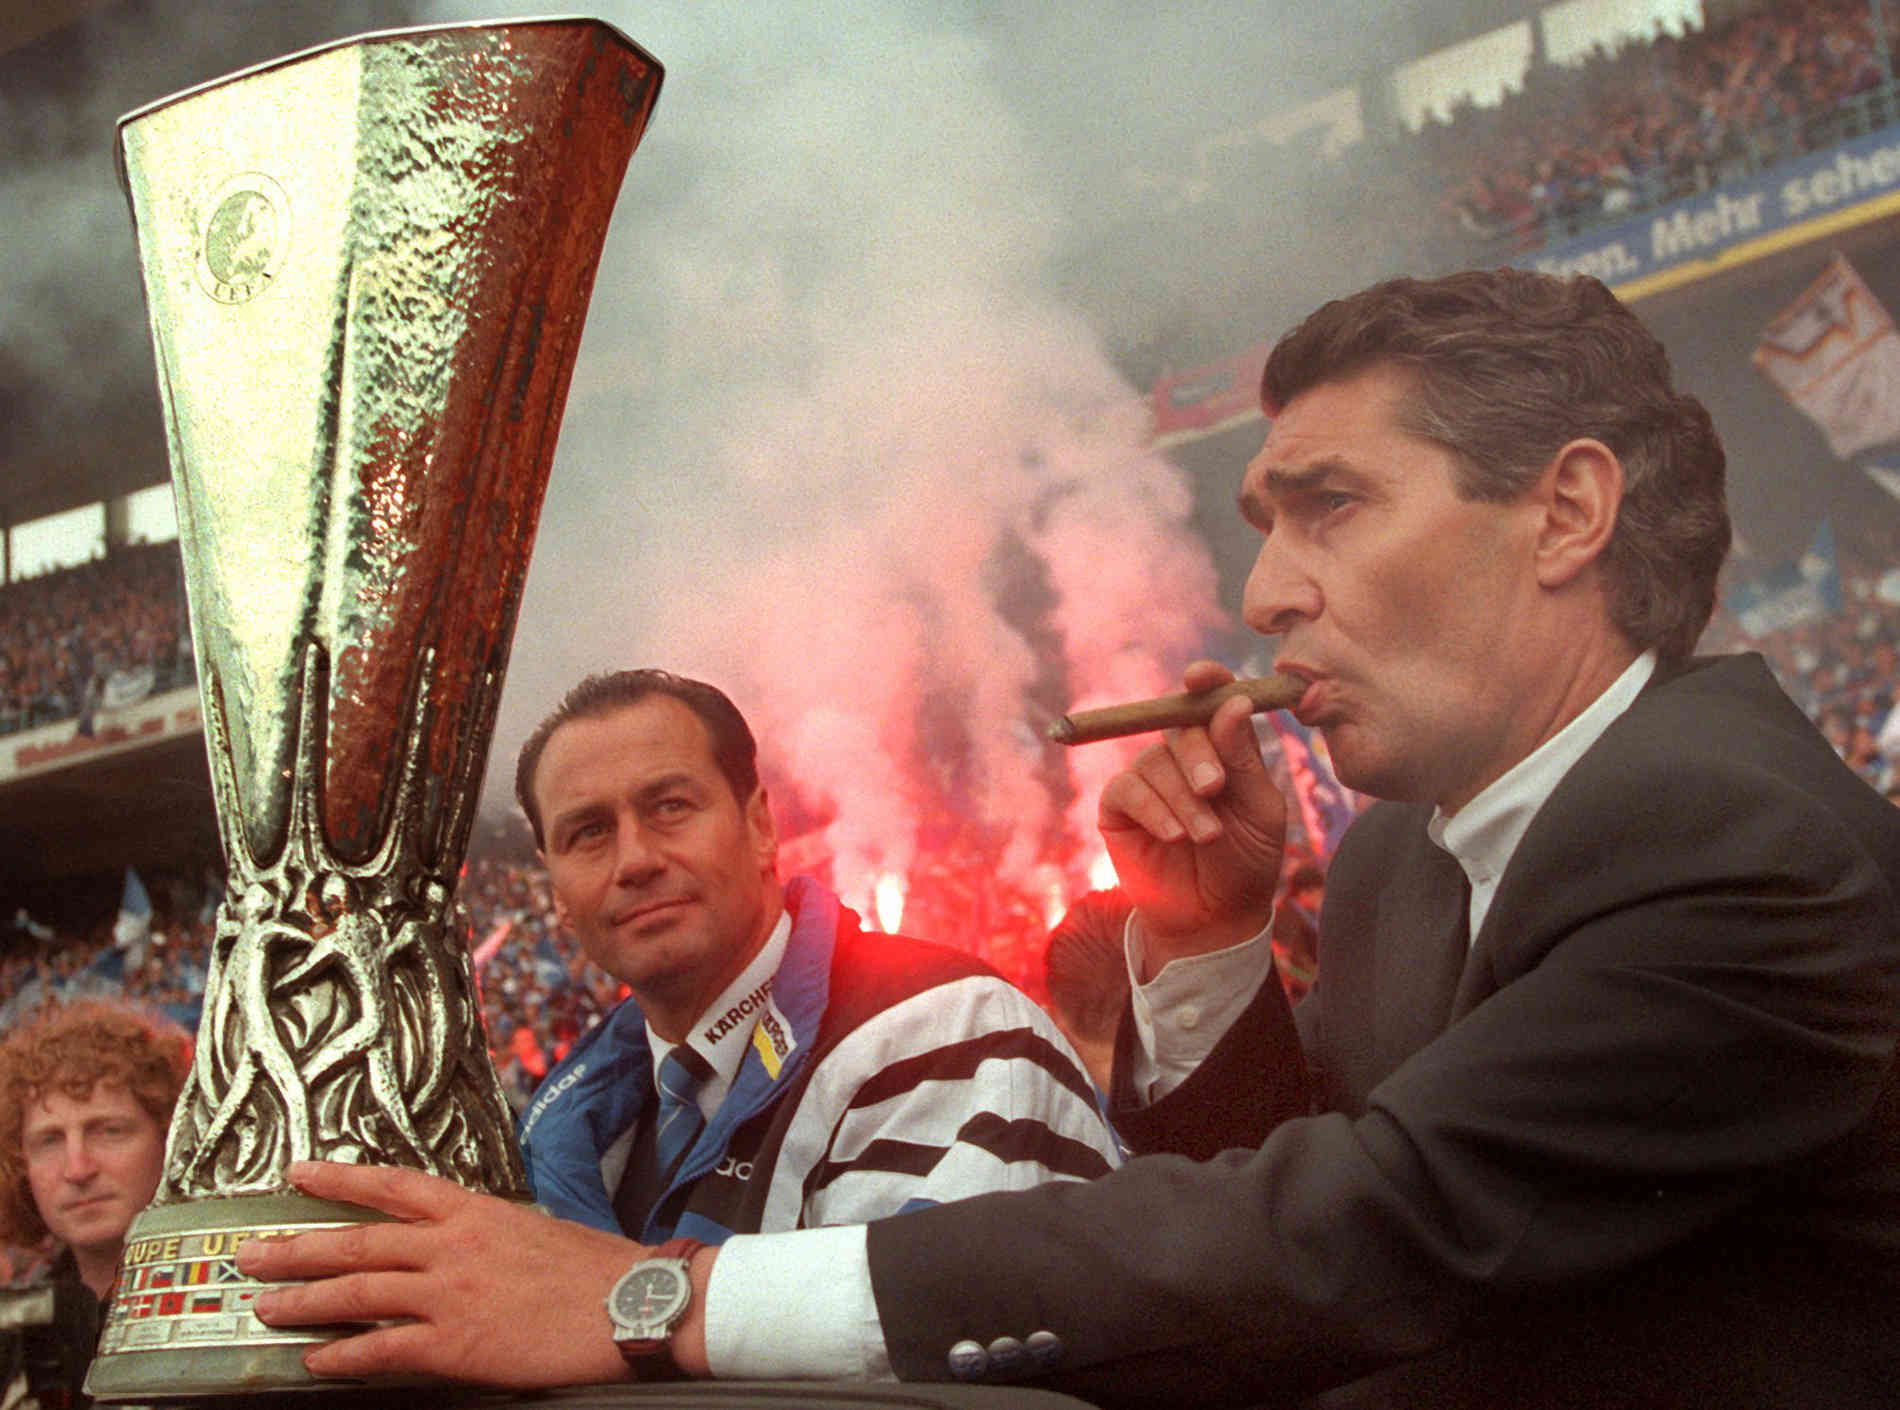 fc_schalke_04_manager_rudi_assauer_is_puffing_smoke_from_his_cigar_shortly_before_the_match_-cigarmonkeys_com_cigar_sport_style_1.jpg